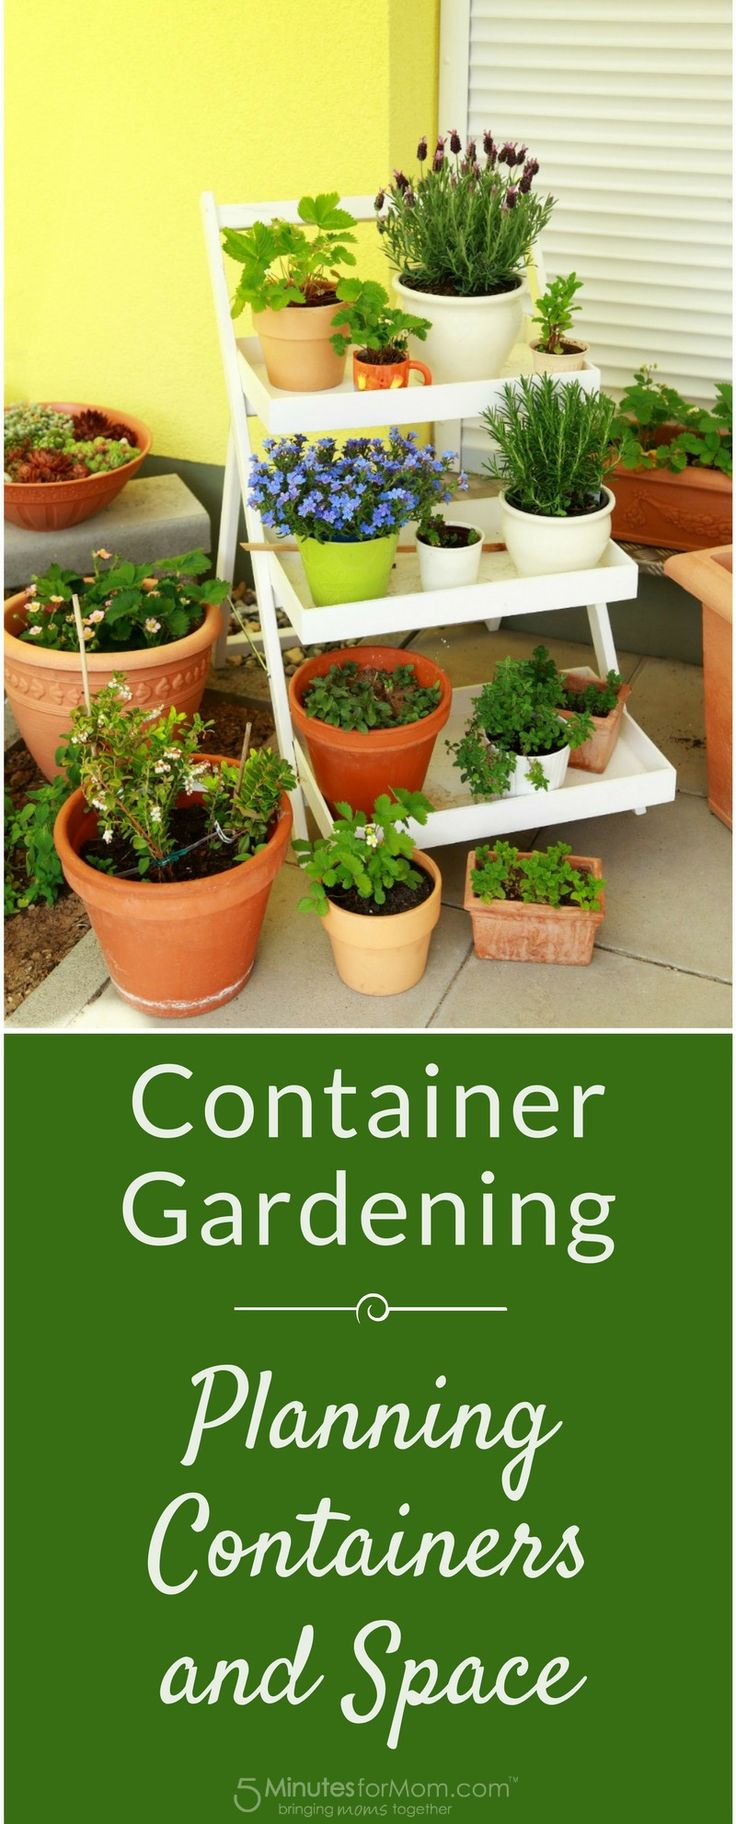 Urban gardening ideas containers - Container Gardening Planning Containers And Space